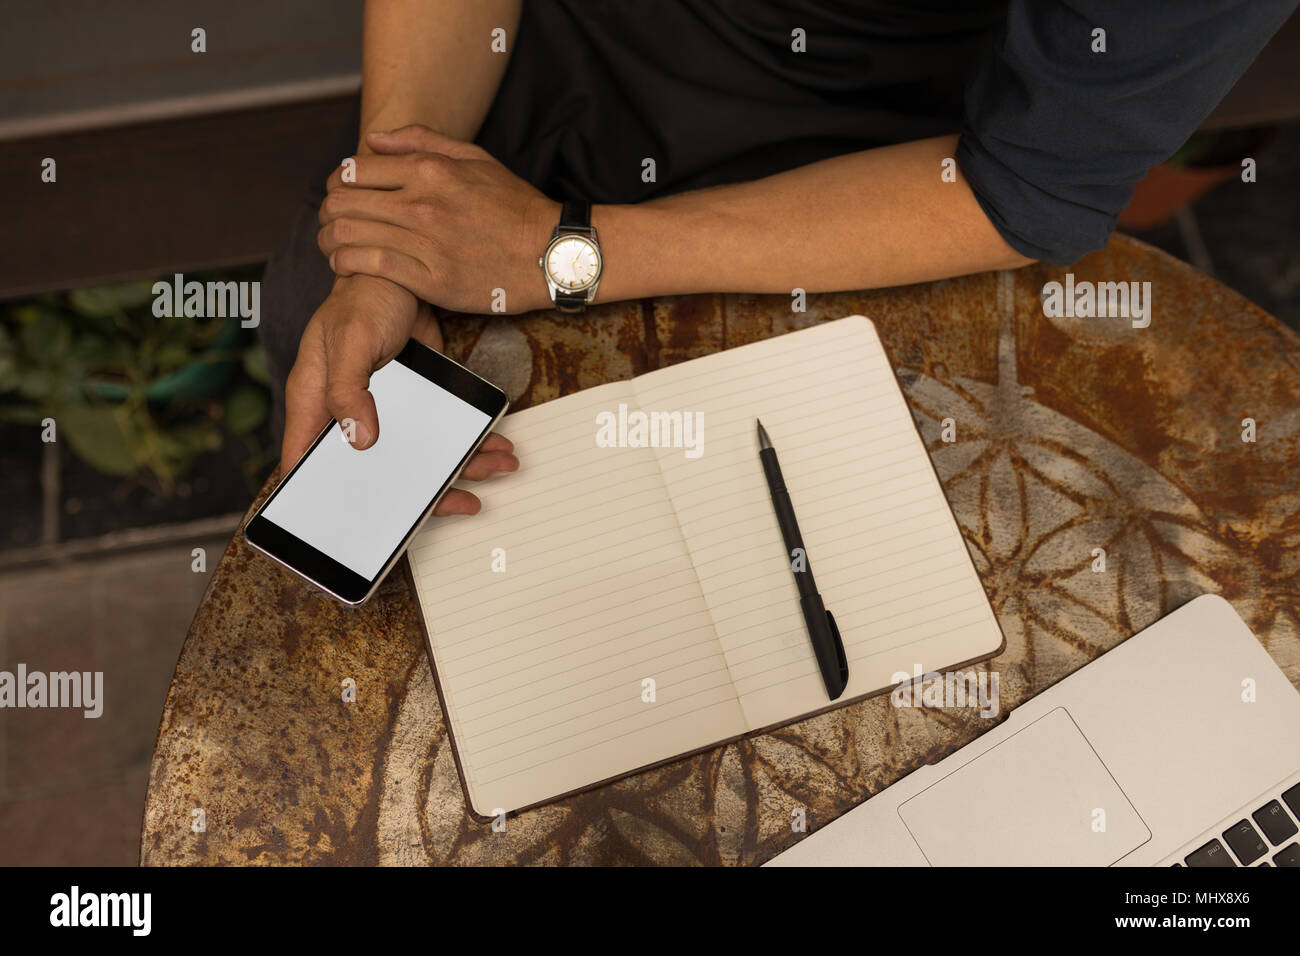 Businessman using mobile phone in cafe - Stock Image